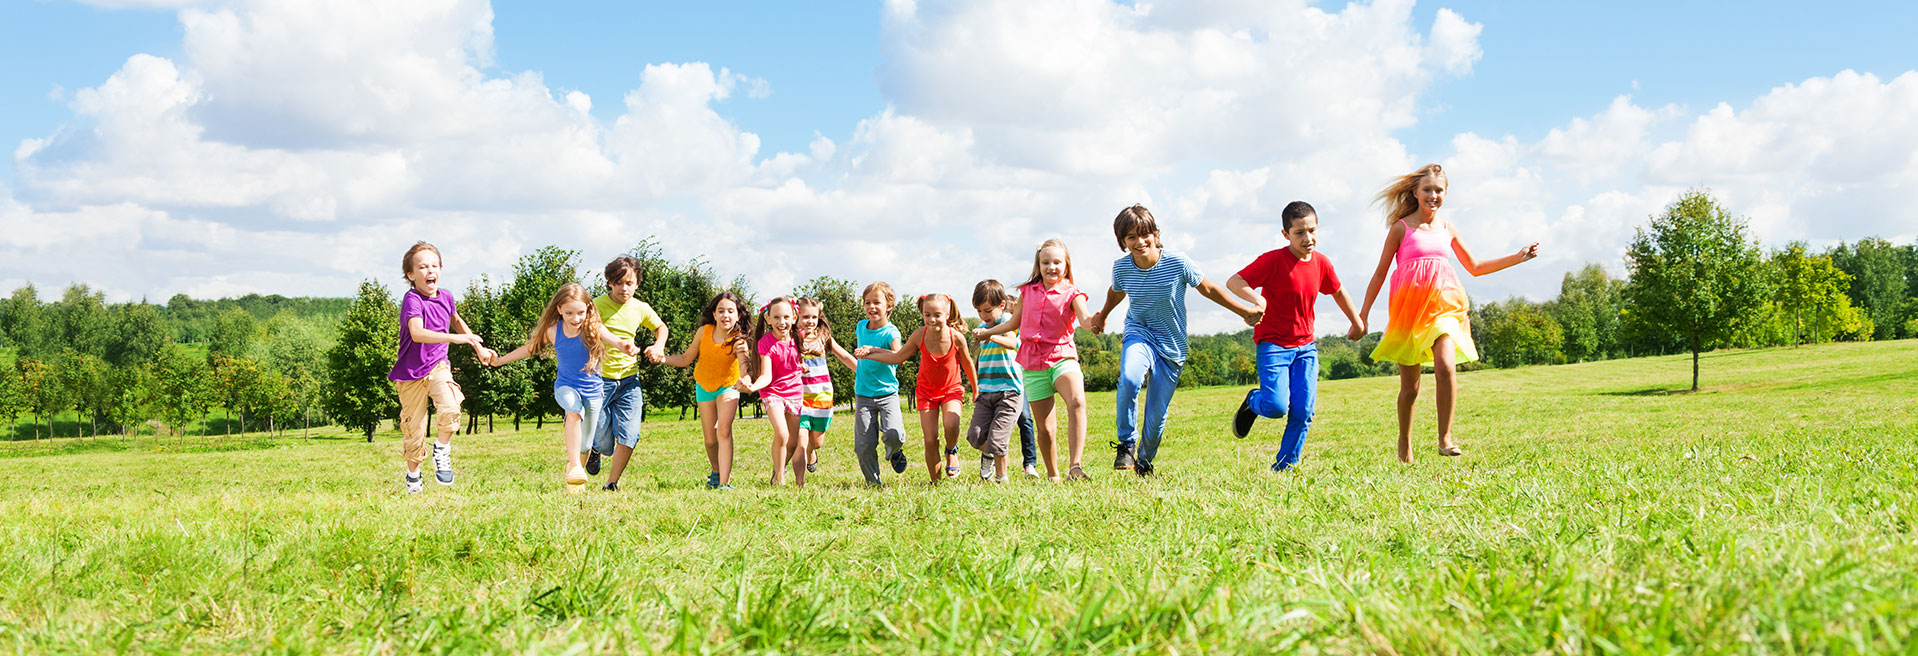 kids running in a field - Pediatric Dentist in San Angelo, TX